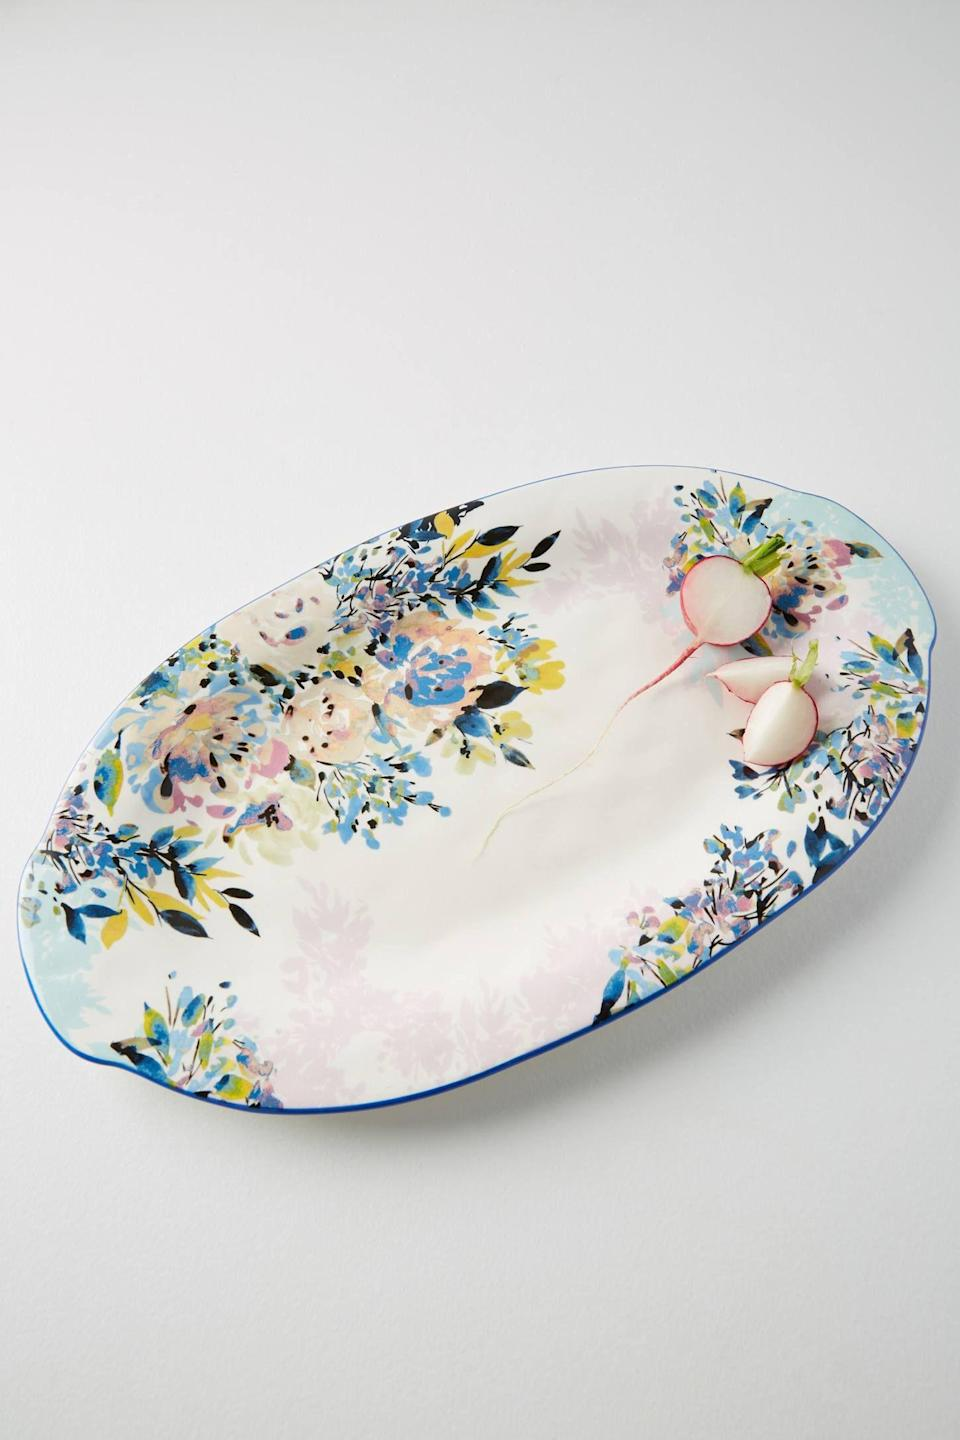 """<p><strong>Anthropologie</strong></p><p>anthropologie.com</p><p><strong>$68.00</strong></p><p><a href=""""https://go.redirectingat.com?id=74968X1596630&url=https%3A%2F%2Fwww.anthropologie.com%2Fshop%2Fgardenshire-platter%3Fcolor%3D049%26type%3DSTANDARD%26size%3DPlatter%26quantity%3D1&sref=https%3A%2F%2Fwww.womansday.com%2Frelationships%2Fdating-marriage%2Fg36408636%2Fbridal-shower-gift-ideas%2F"""" rel=""""nofollow noopener"""" target=""""_blank"""" data-ylk=""""slk:Shop Now"""" class=""""link rapid-noclick-resp"""">Shop Now</a></p><p>For the bride who loves to entertain, this floral platter will add a touch of color to her table. It's hand-painted and understated enough to match the most traditional or contemporary kitchens.</p>"""